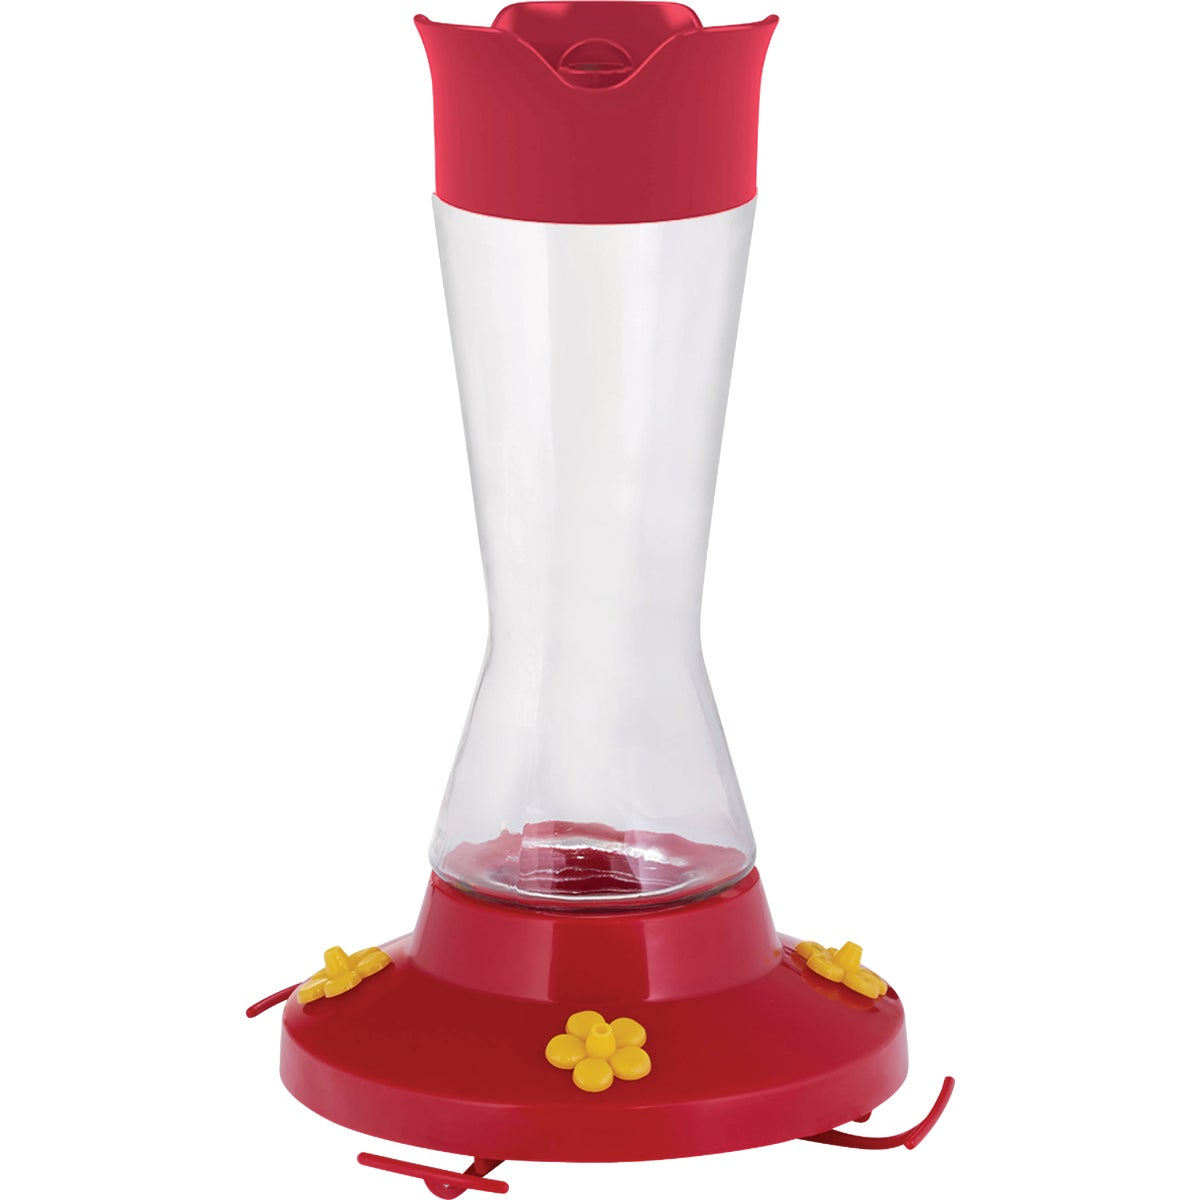 16OZ HUMMINGBIRD FEEDER - 210P by Woodstream Corp